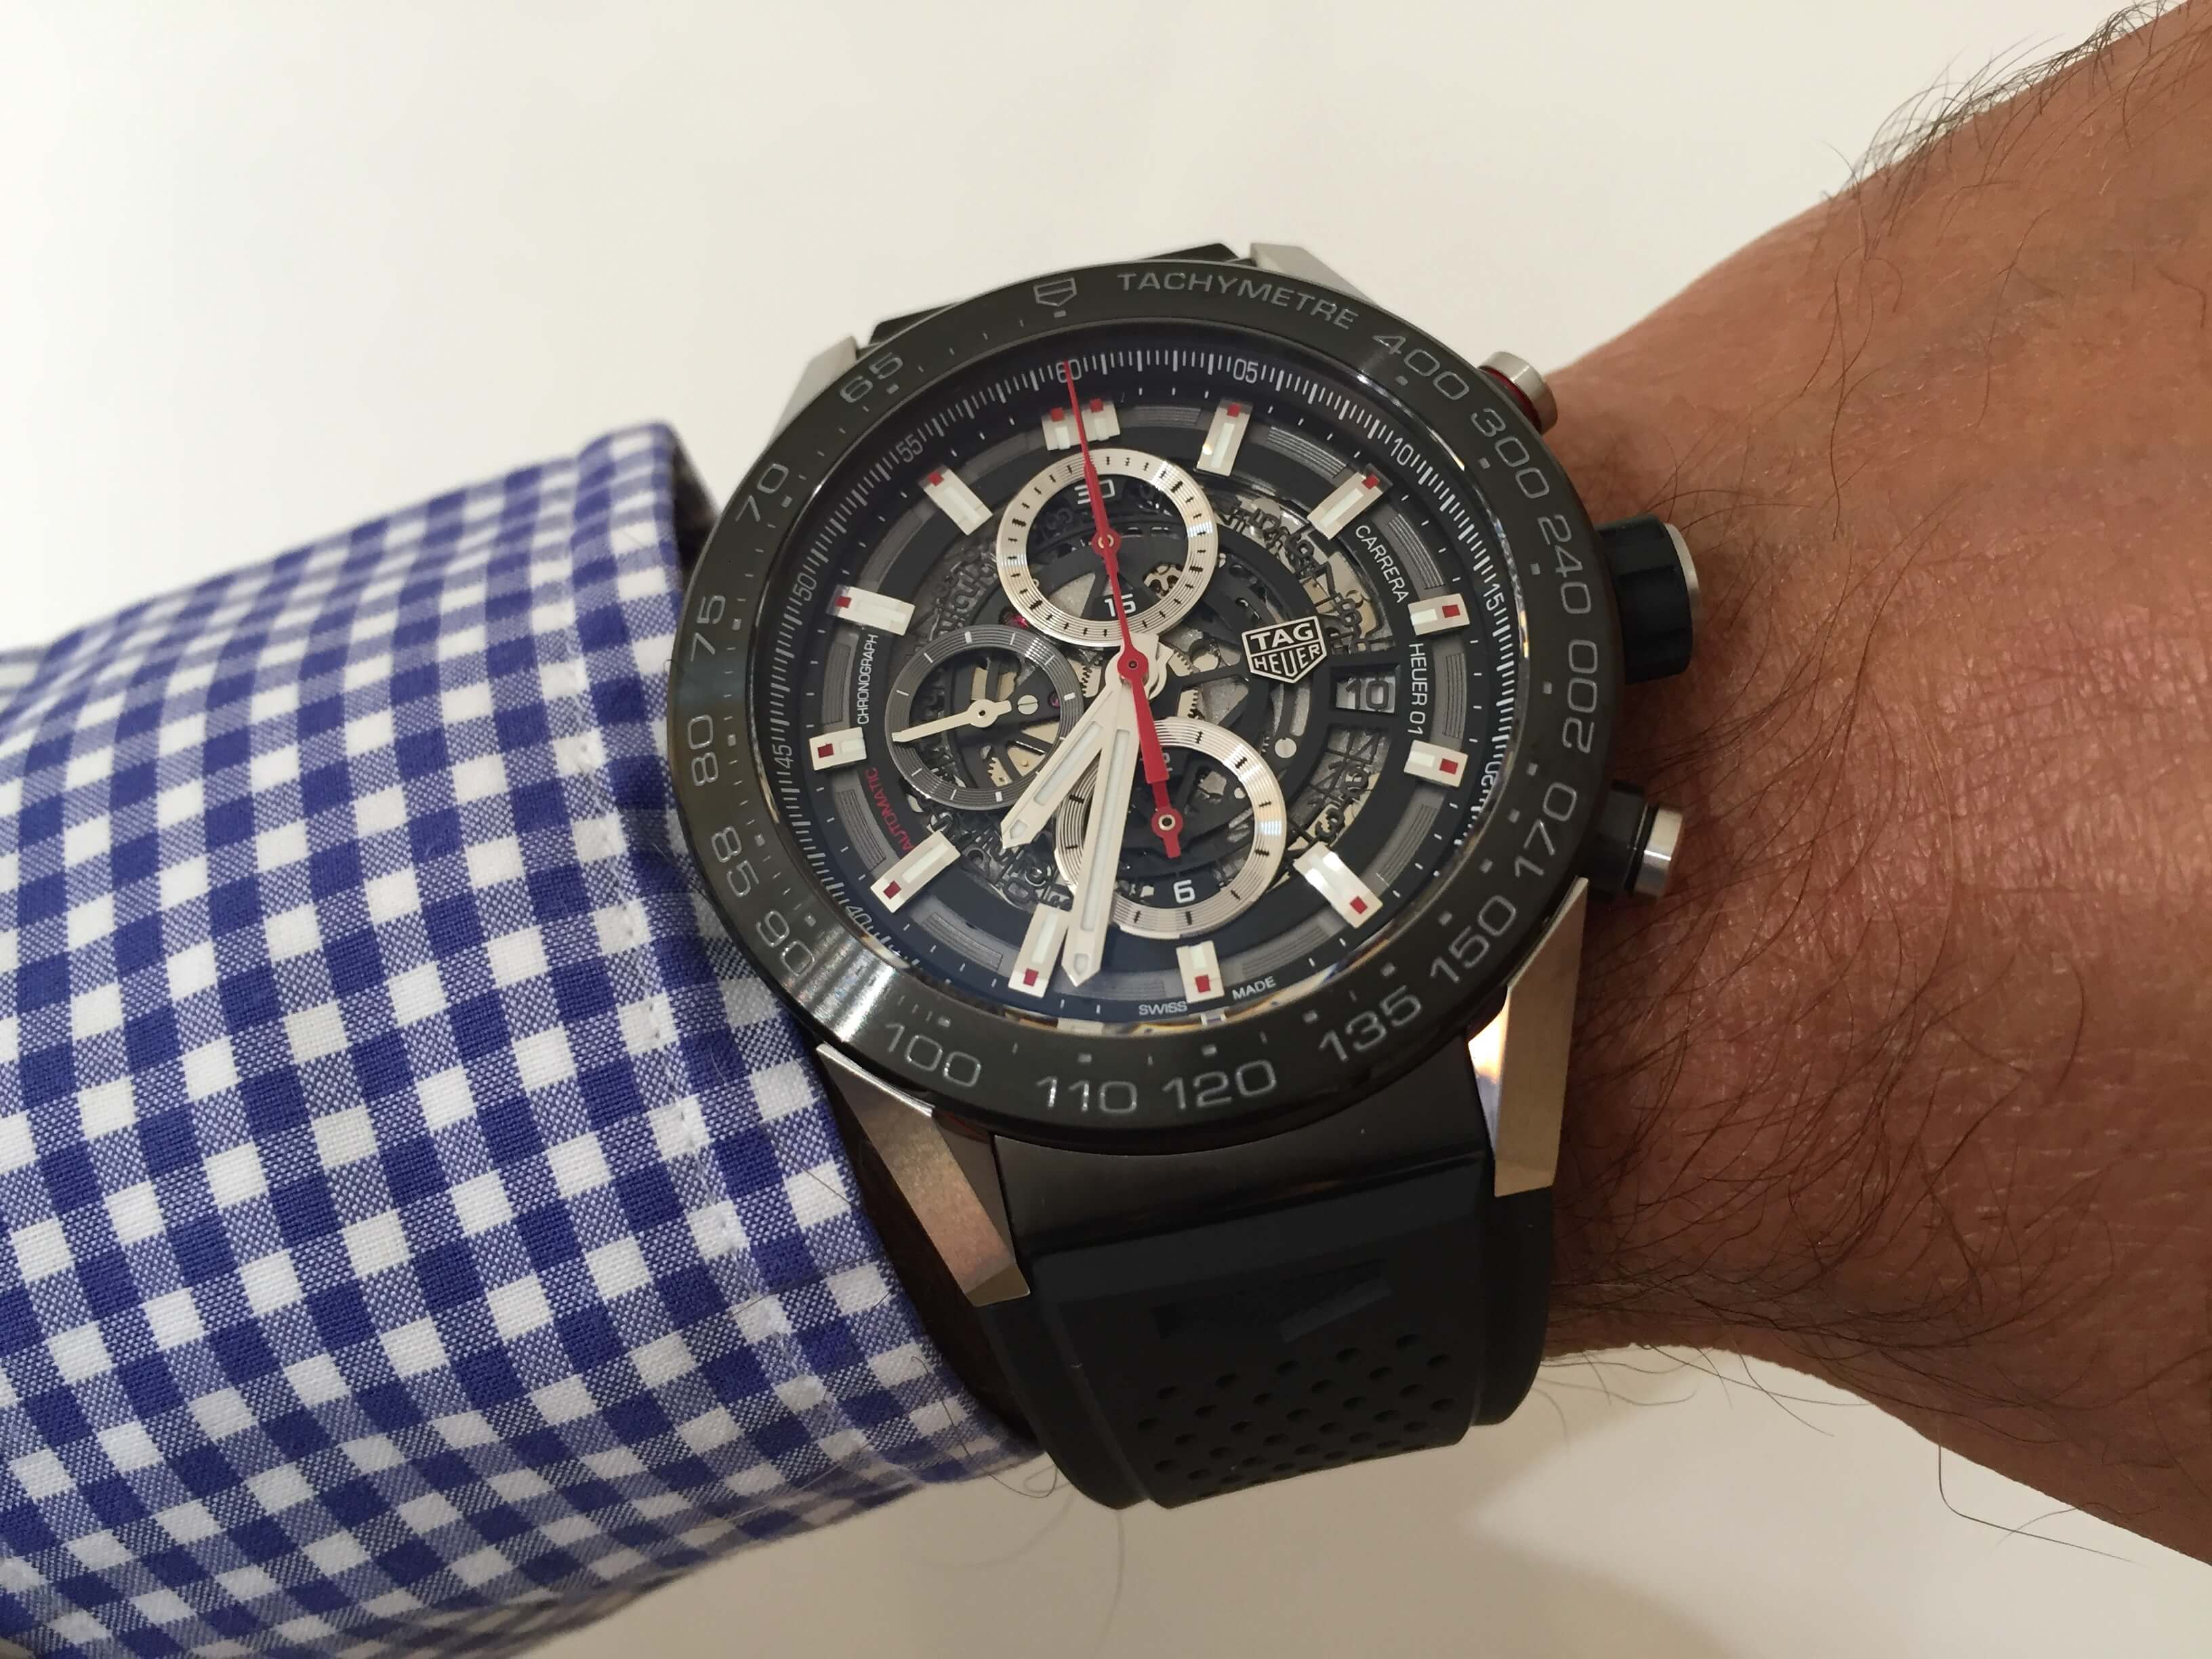 THE BRAND-NEW TAG HEUER CARRERA 01